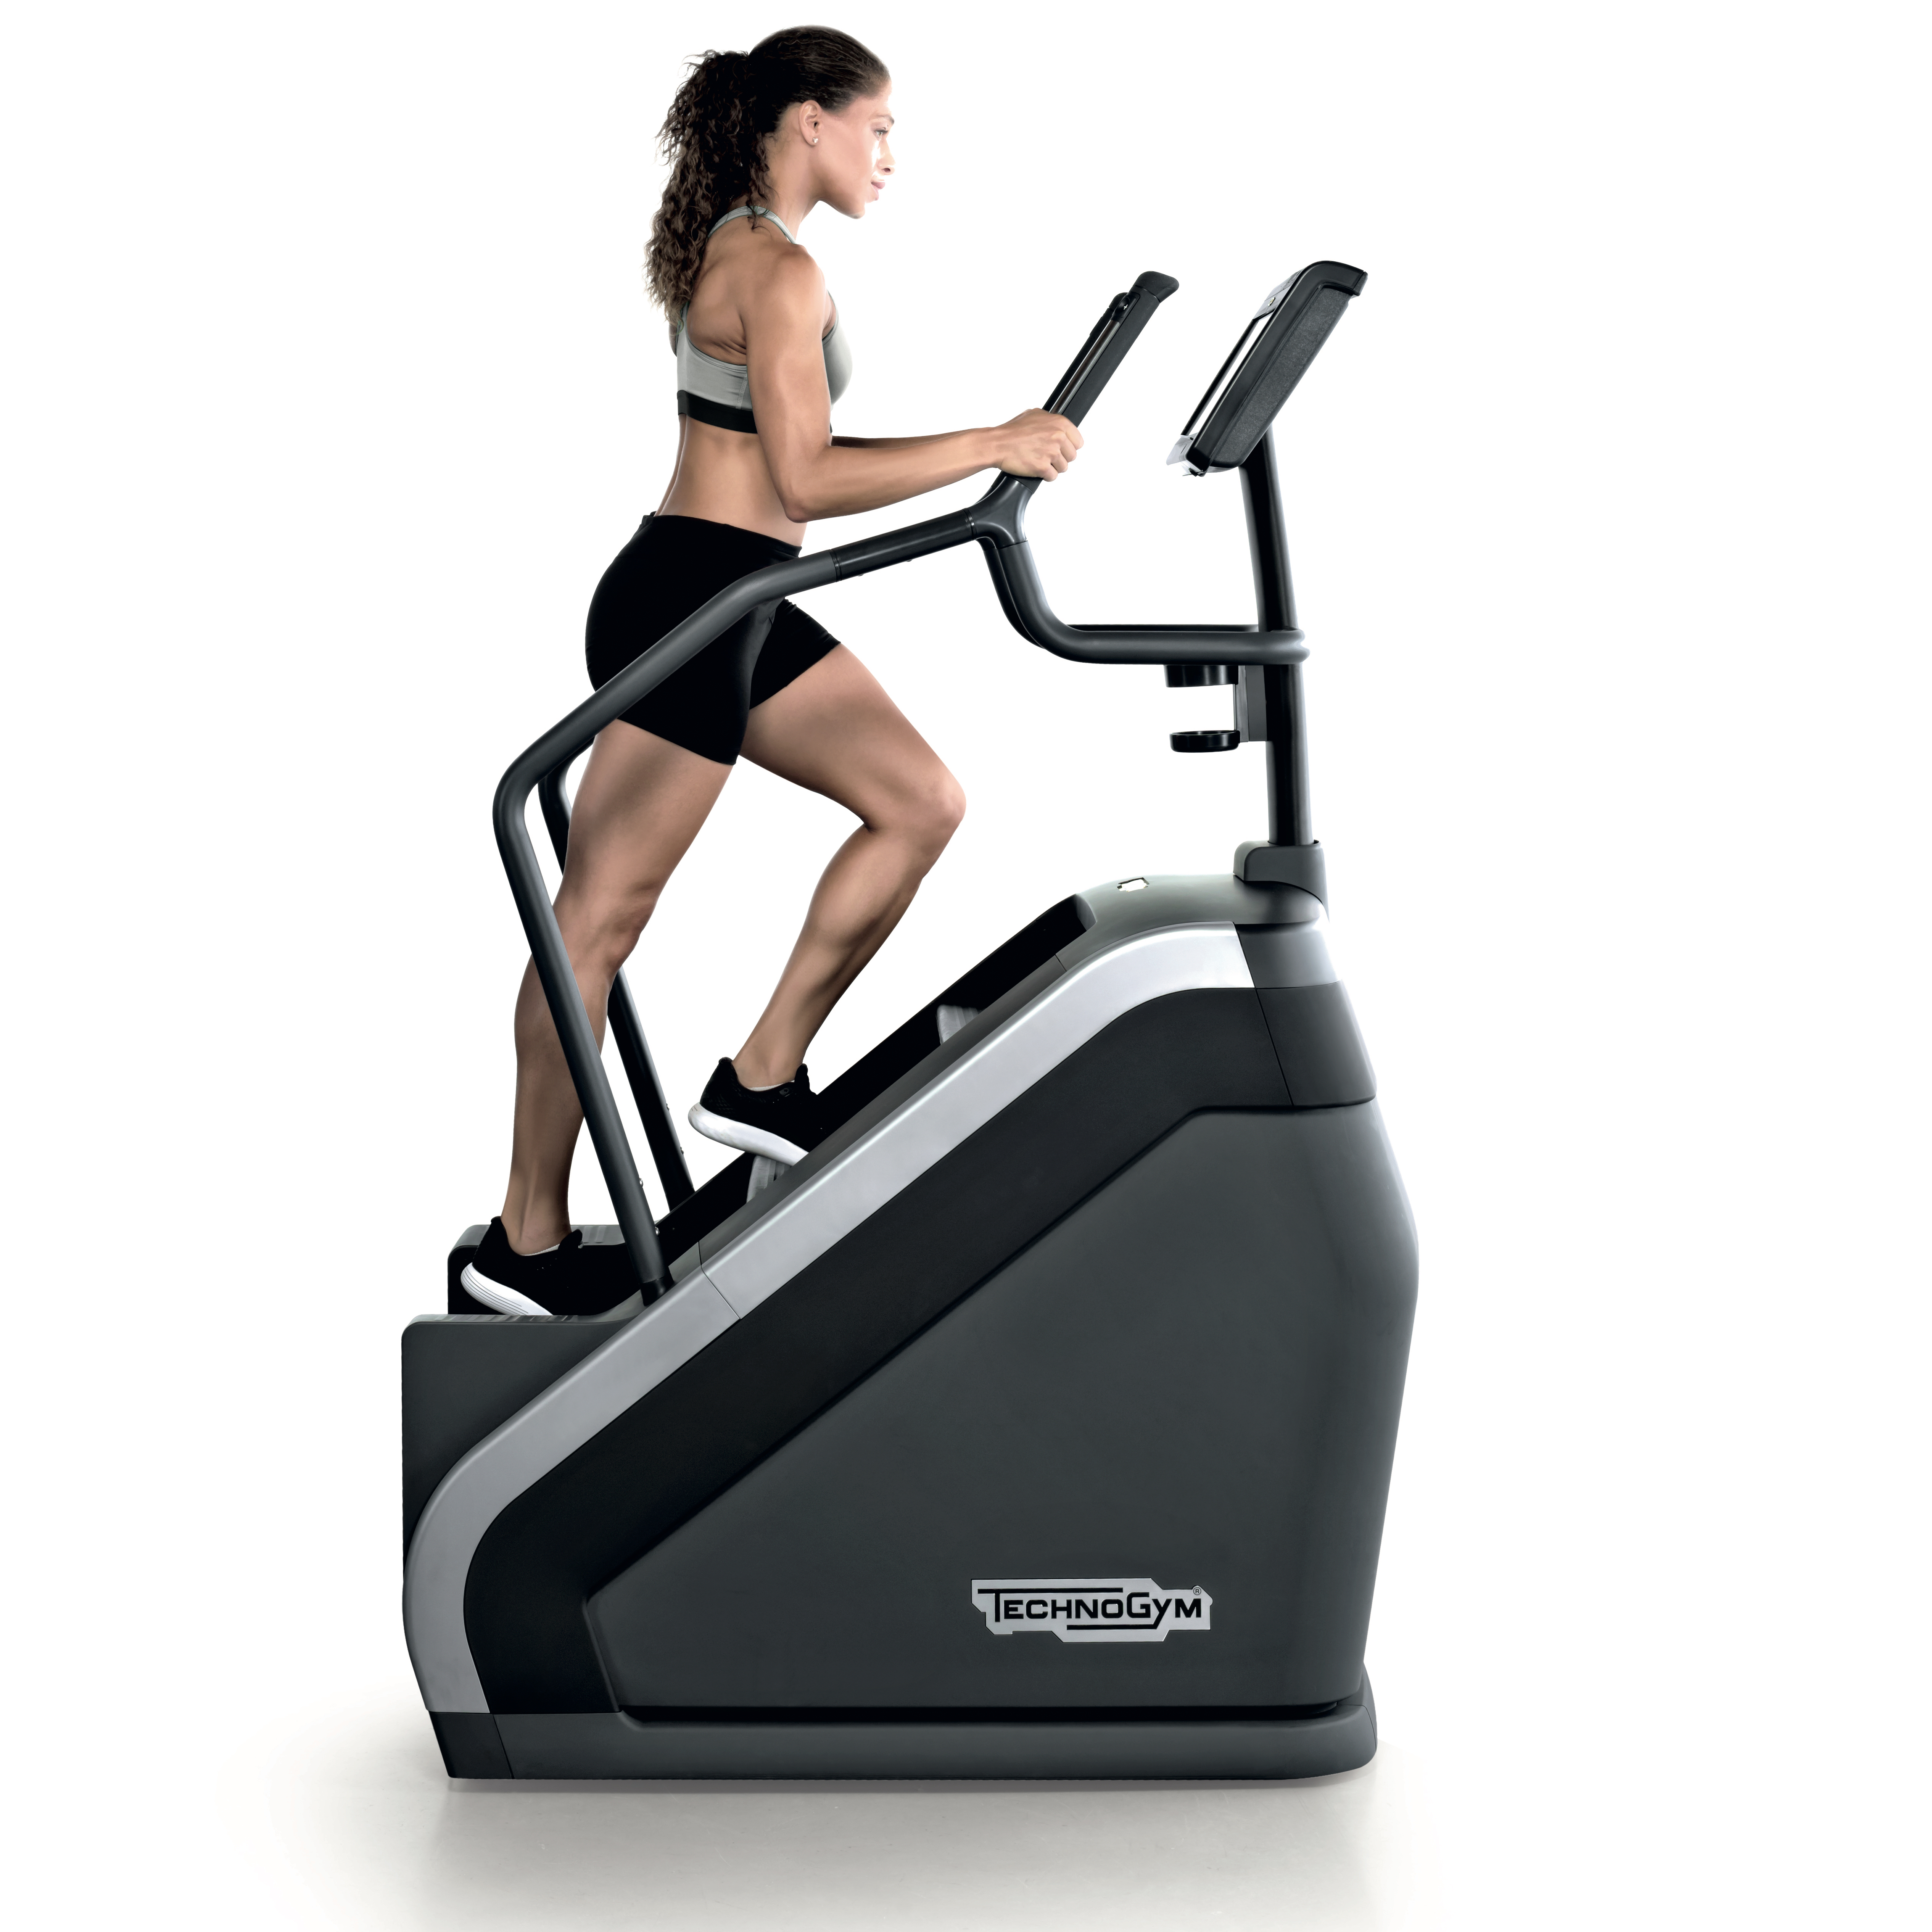 Commercial fitness equipment supplier technogym unveils for Technogym all in one